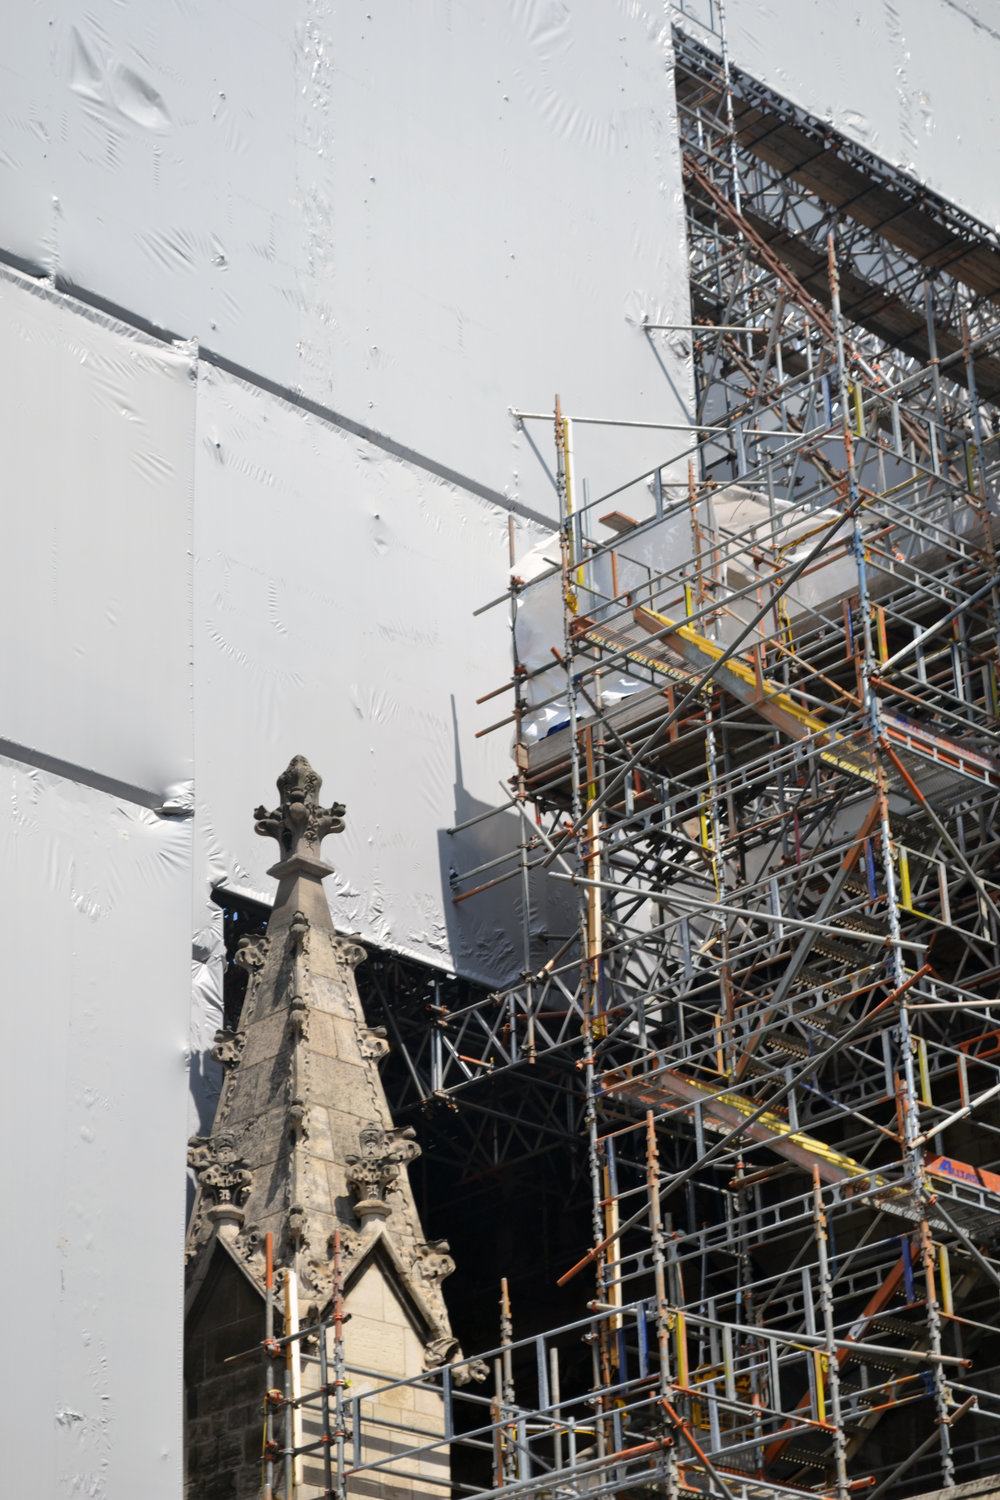 Scaffolding swallowing up Elizabeth Tower and its surrounds